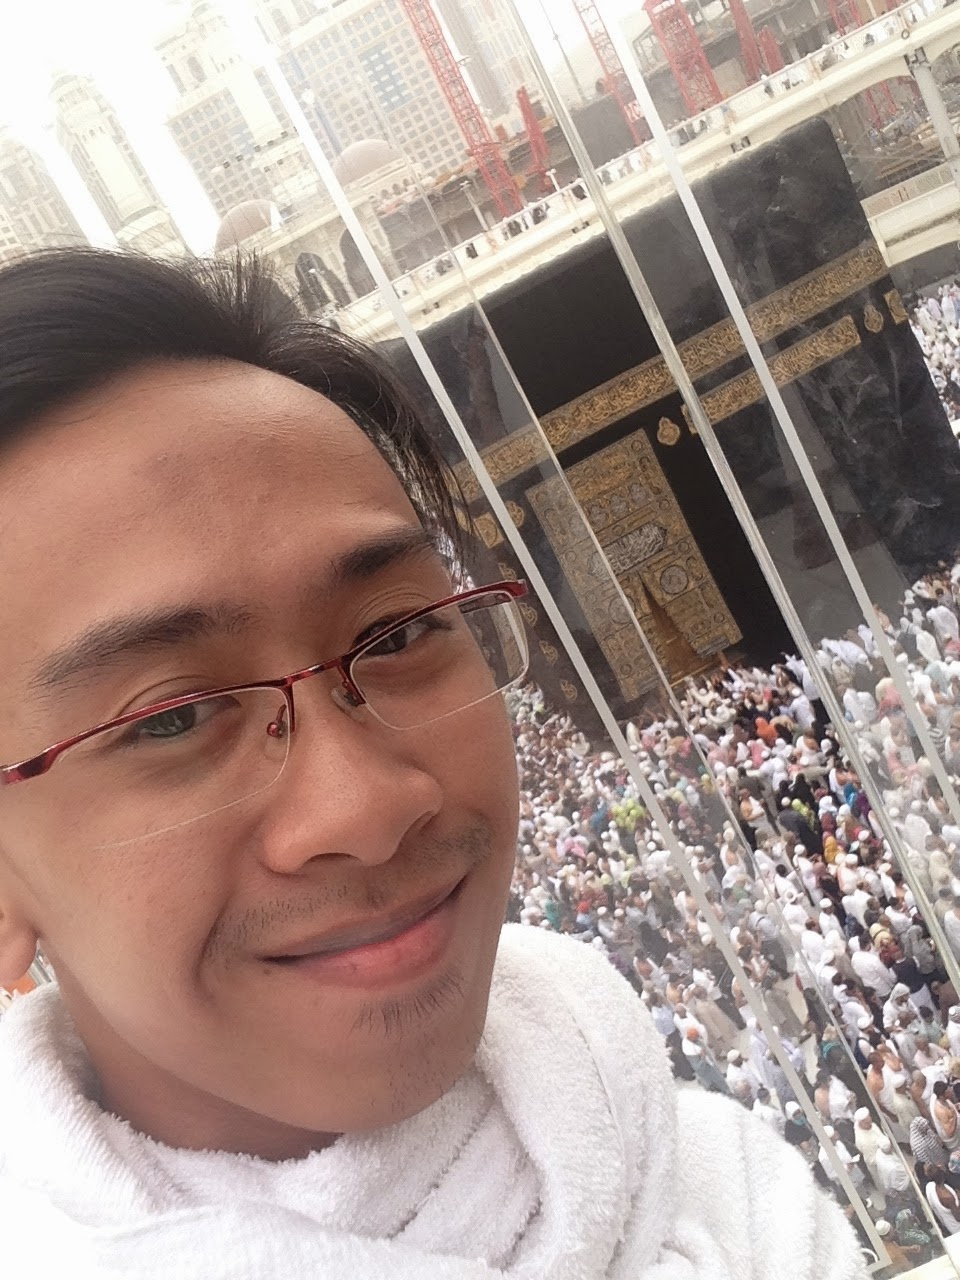 UMRAH HISHAM AL HAJ APRIL MAKKAH